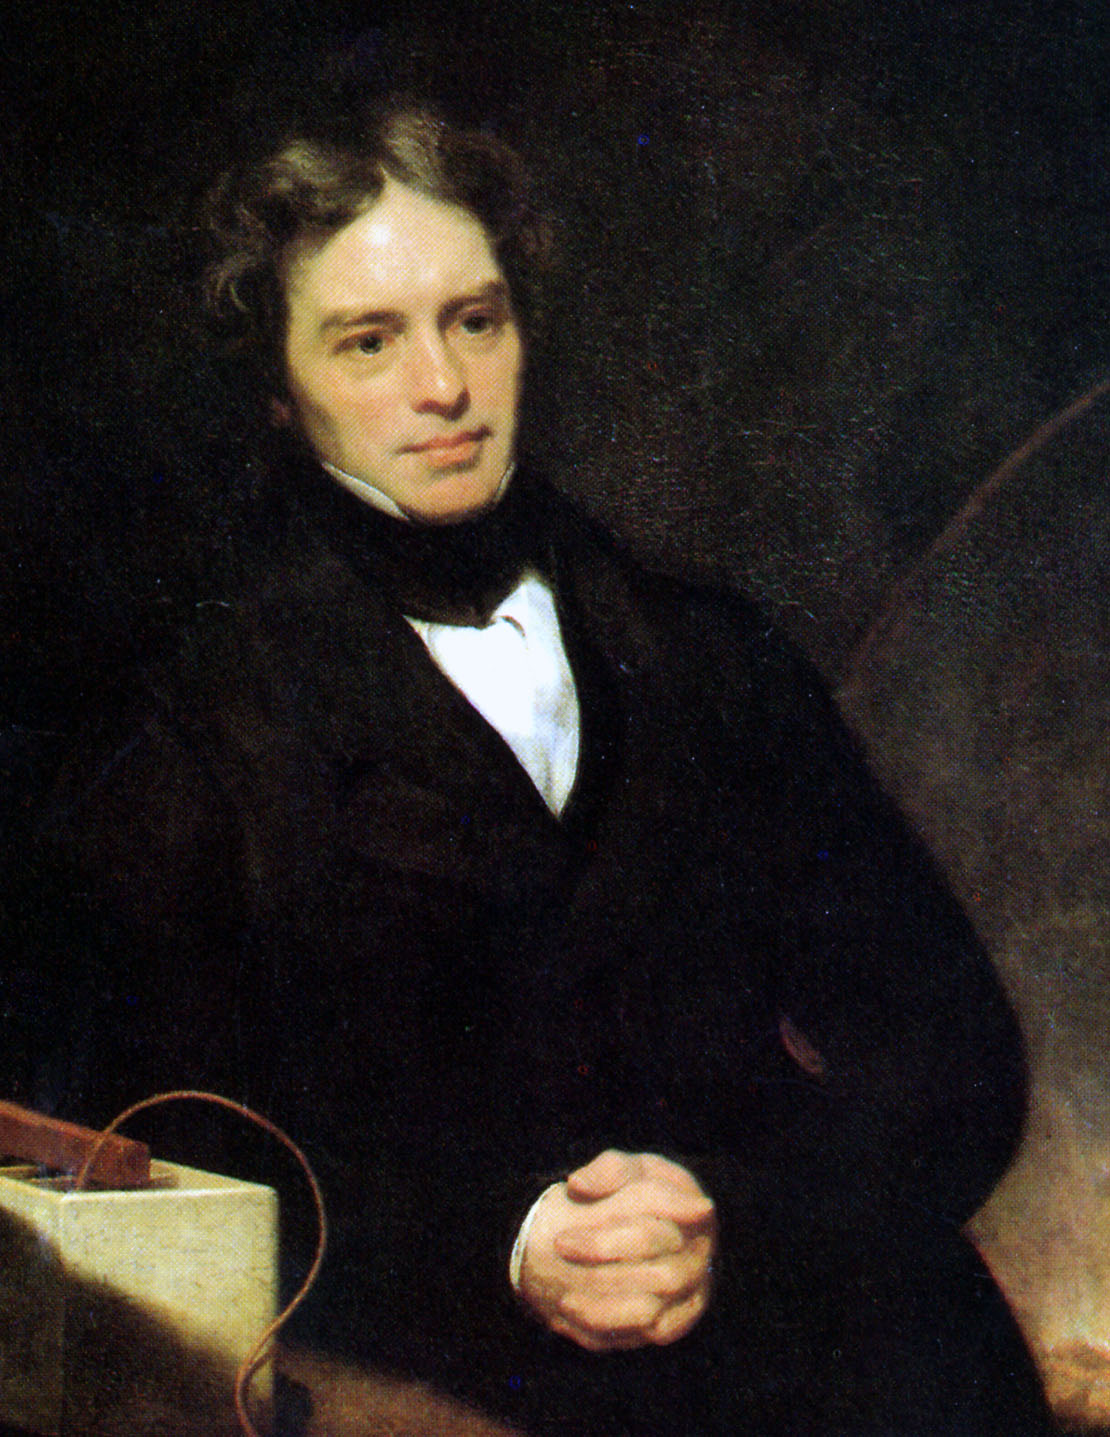 Michael Faraday, renowned scientist and Glasite